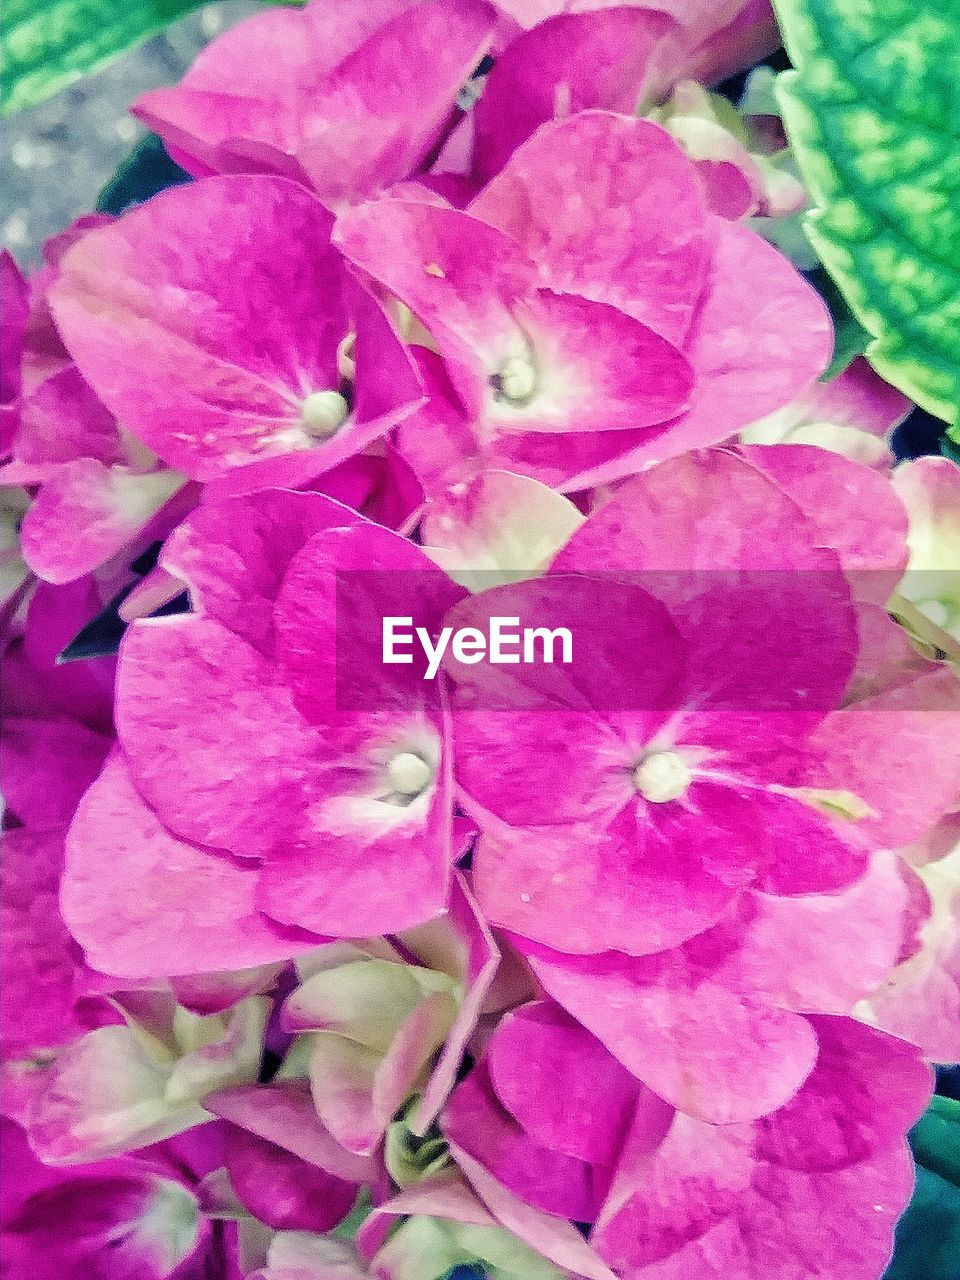 flowering plant, flower, plant, vulnerability, beauty in nature, pink color, freshness, petal, fragility, close-up, inflorescence, growth, flower head, nature, no people, day, outdoors, high angle view, botany, springtime, purple, bunch of flowers